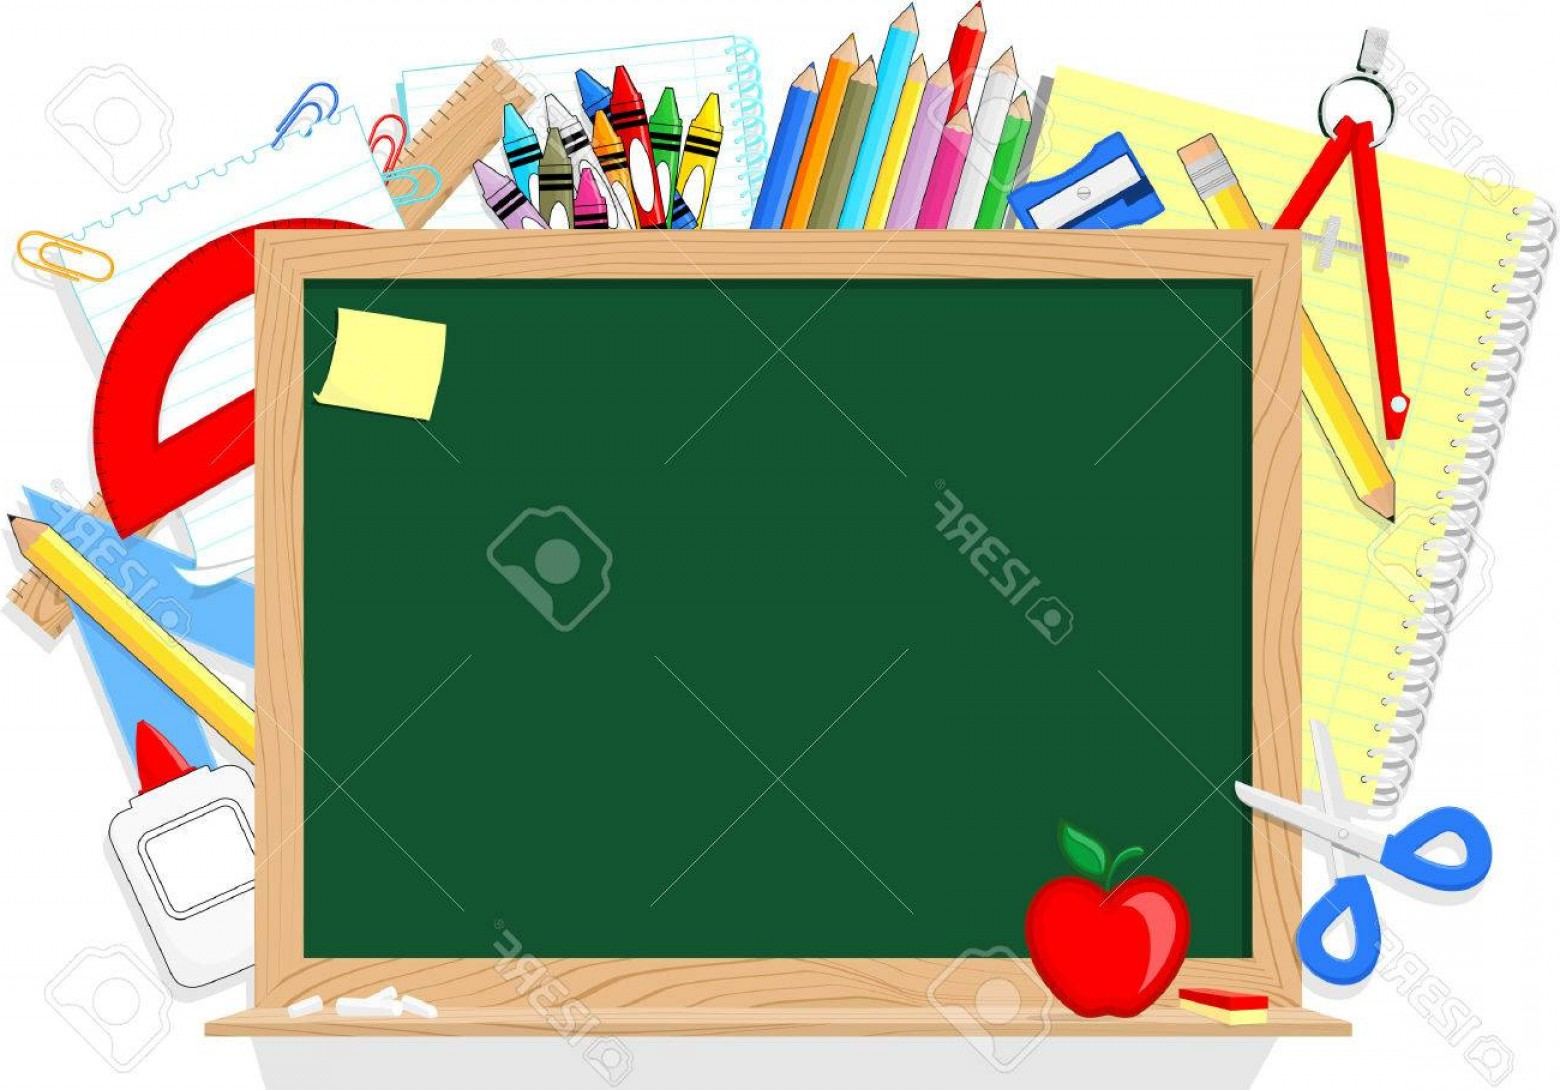 Individual School Supplies Vector: Photostock Vector Blackboard And School Education Supplies Items Isolated On White Background